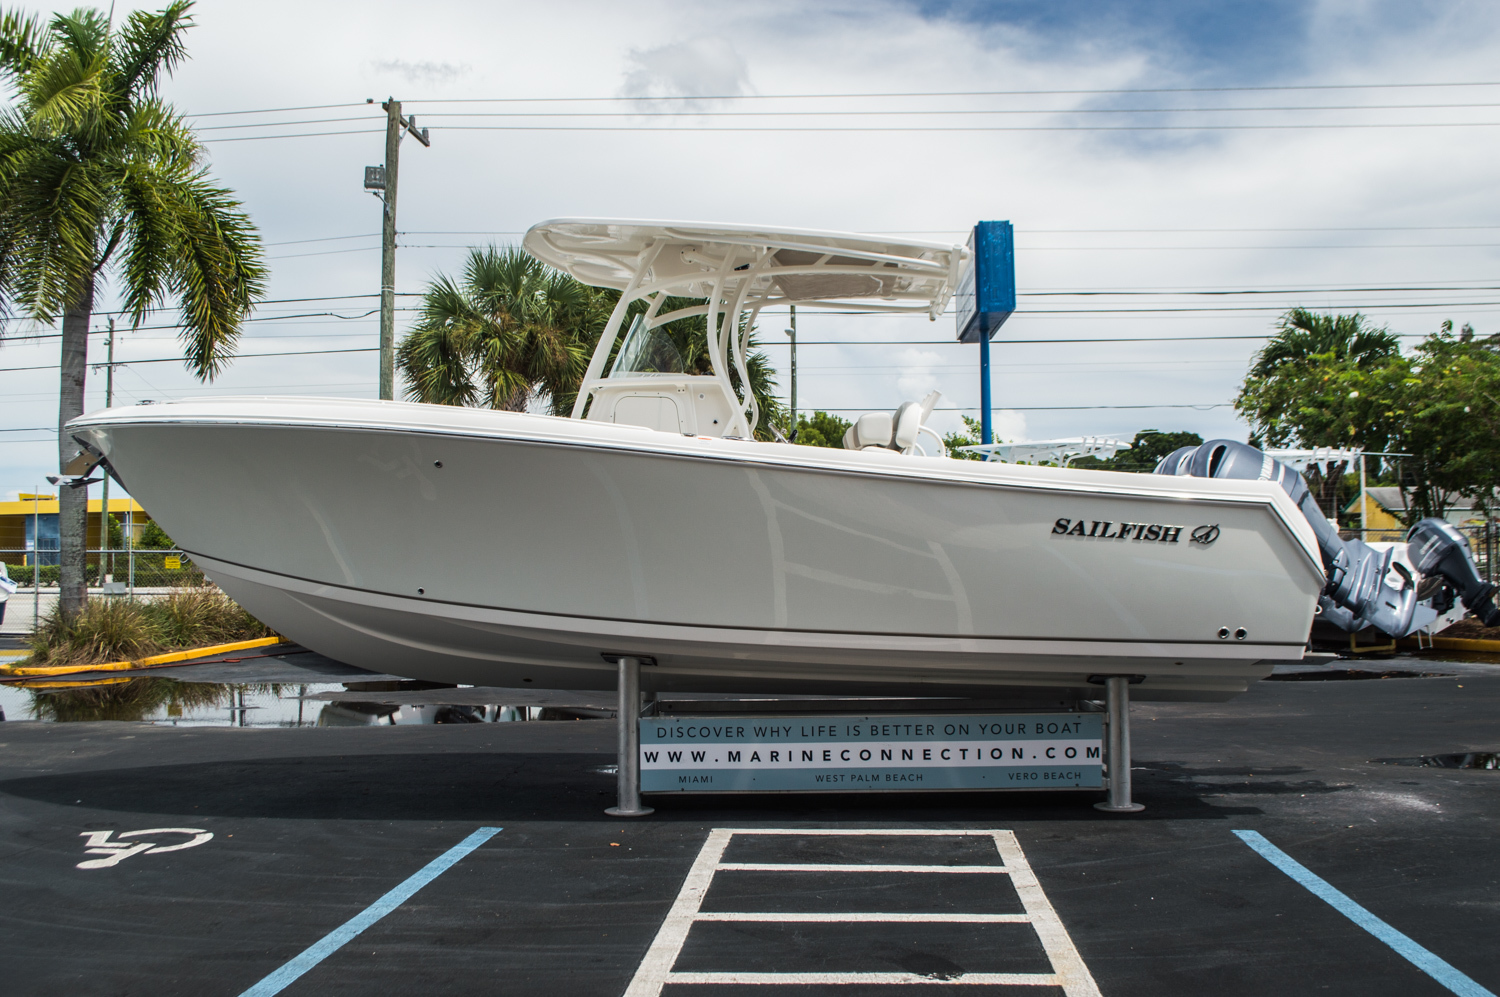 Thumbnail 4 for New 2016 Sailfish 270 CC Center Console boat for sale in West Palm Beach, FL